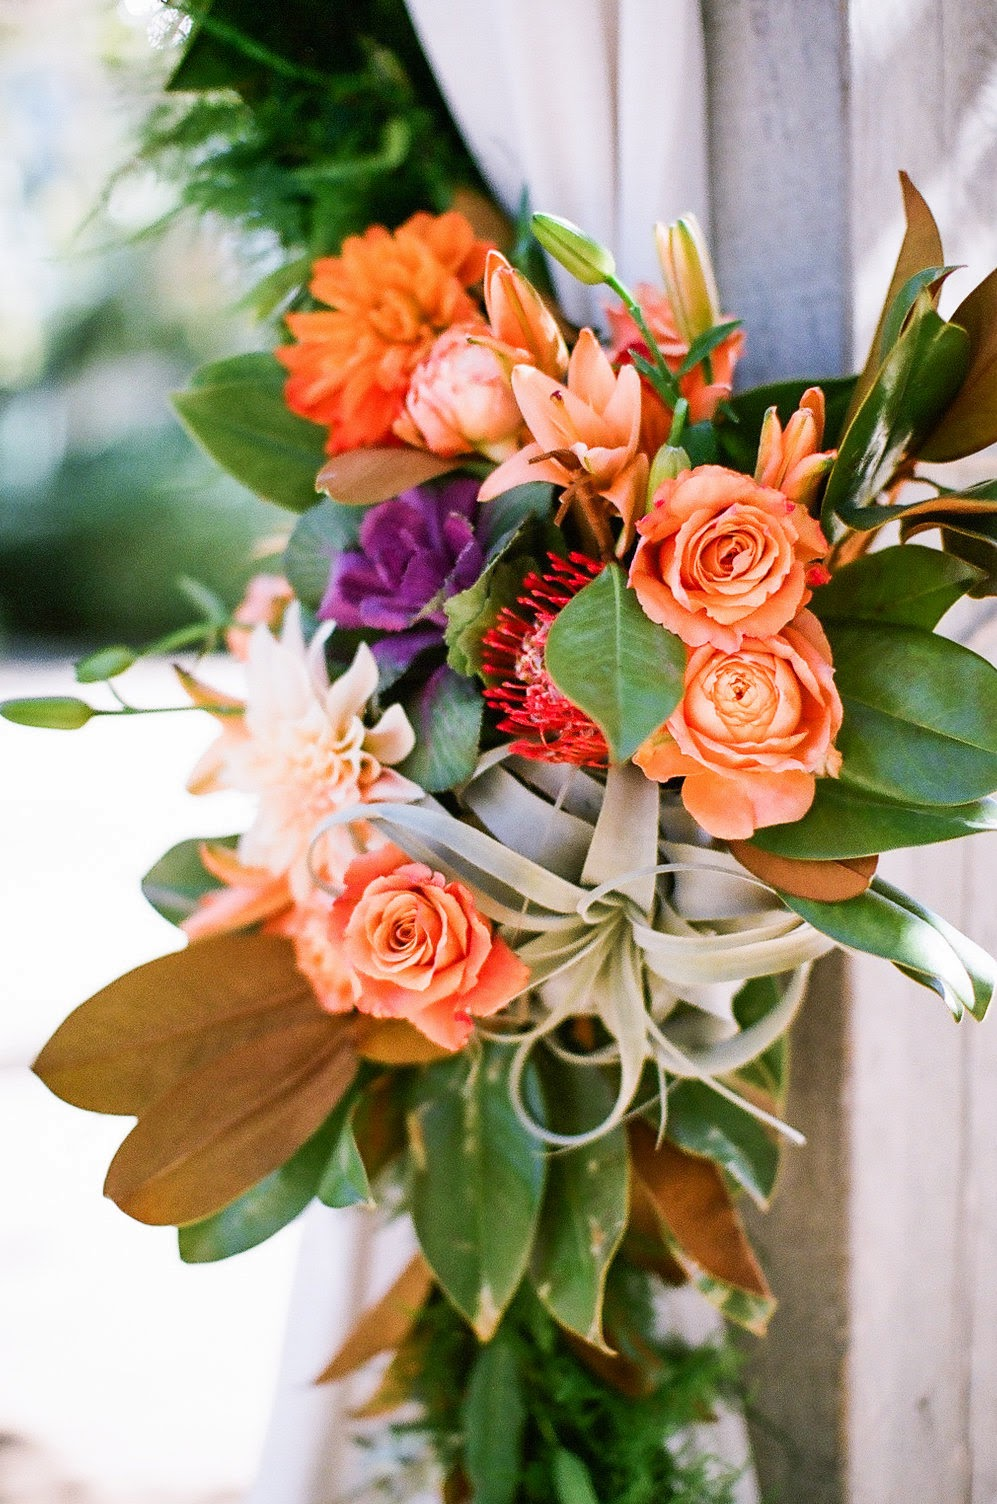 santabarbarawedding.com | photography: Nancy Neil | Orange Eclectic Wedding Ideas